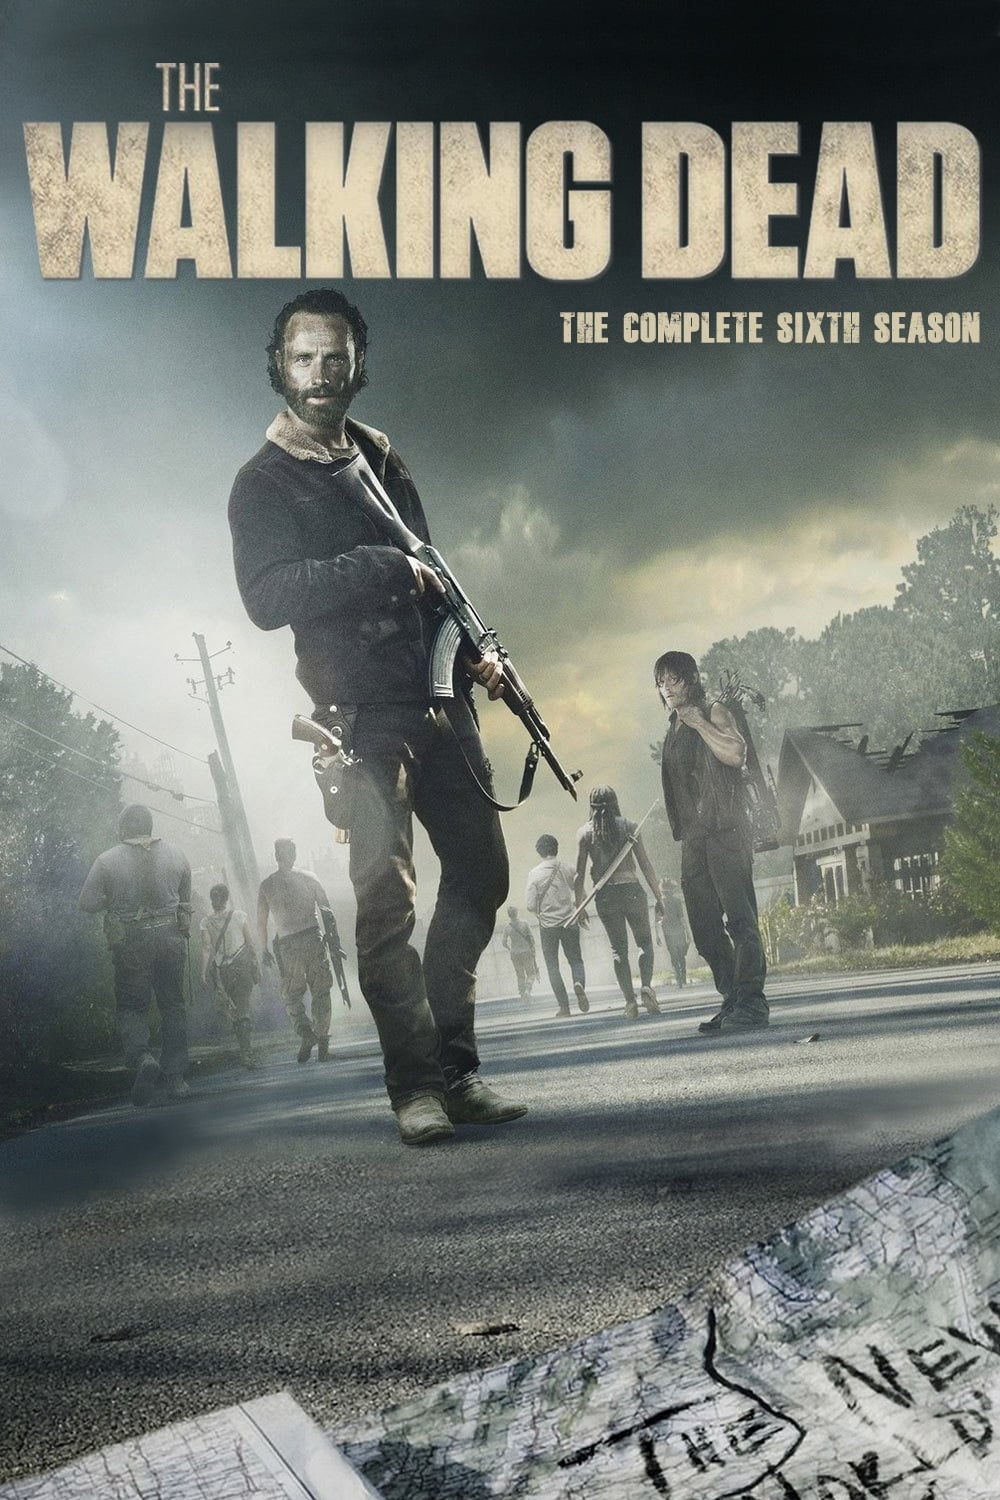 Assistir The Walking Dead - 6x07 - Dublado - Pense Rápido Online Dublado 1080p